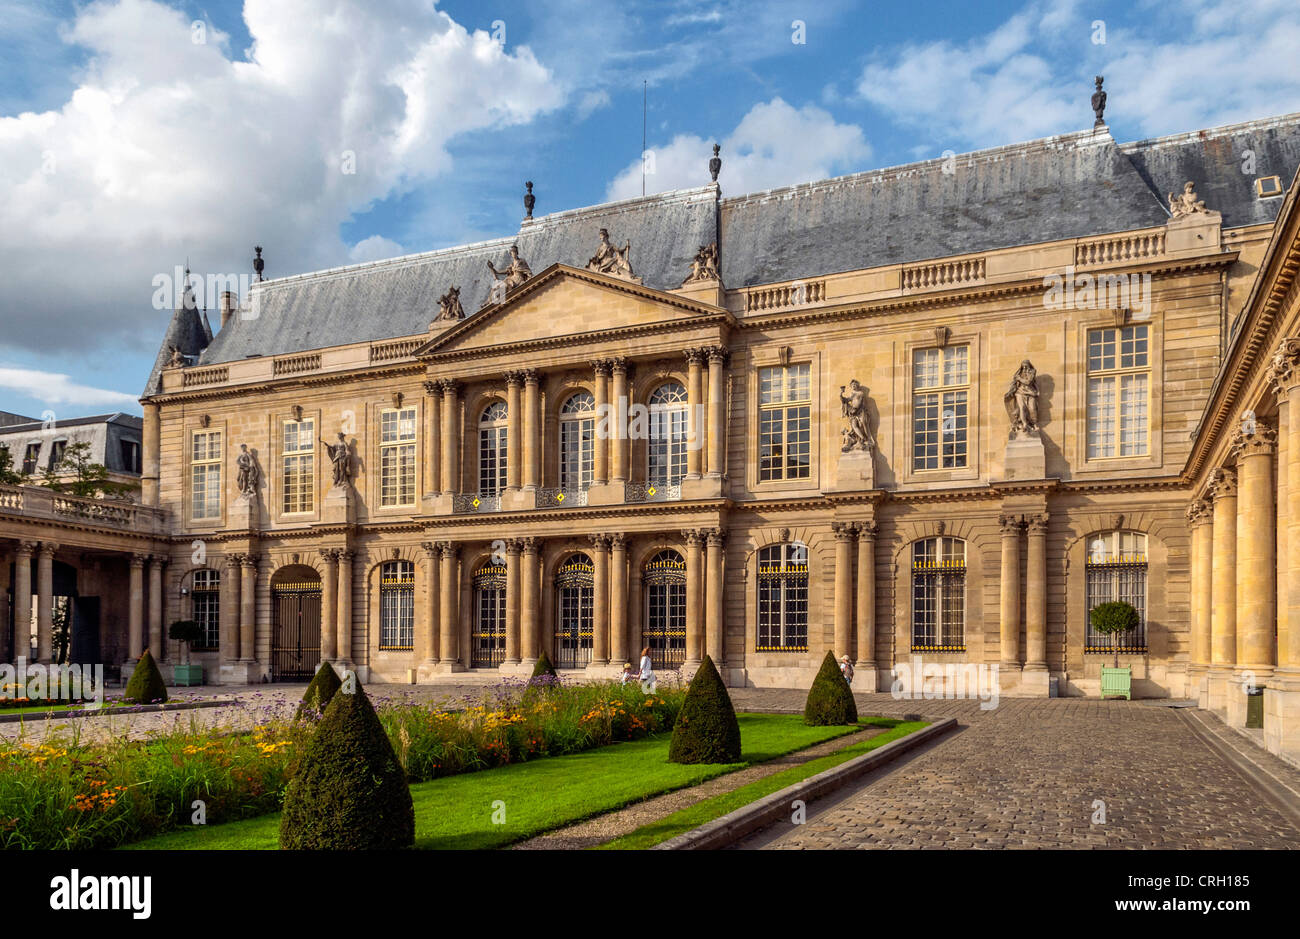 National Archives or Archives Nationales building, aka the Hotel de Soubise building, Paris, France - Stock Image